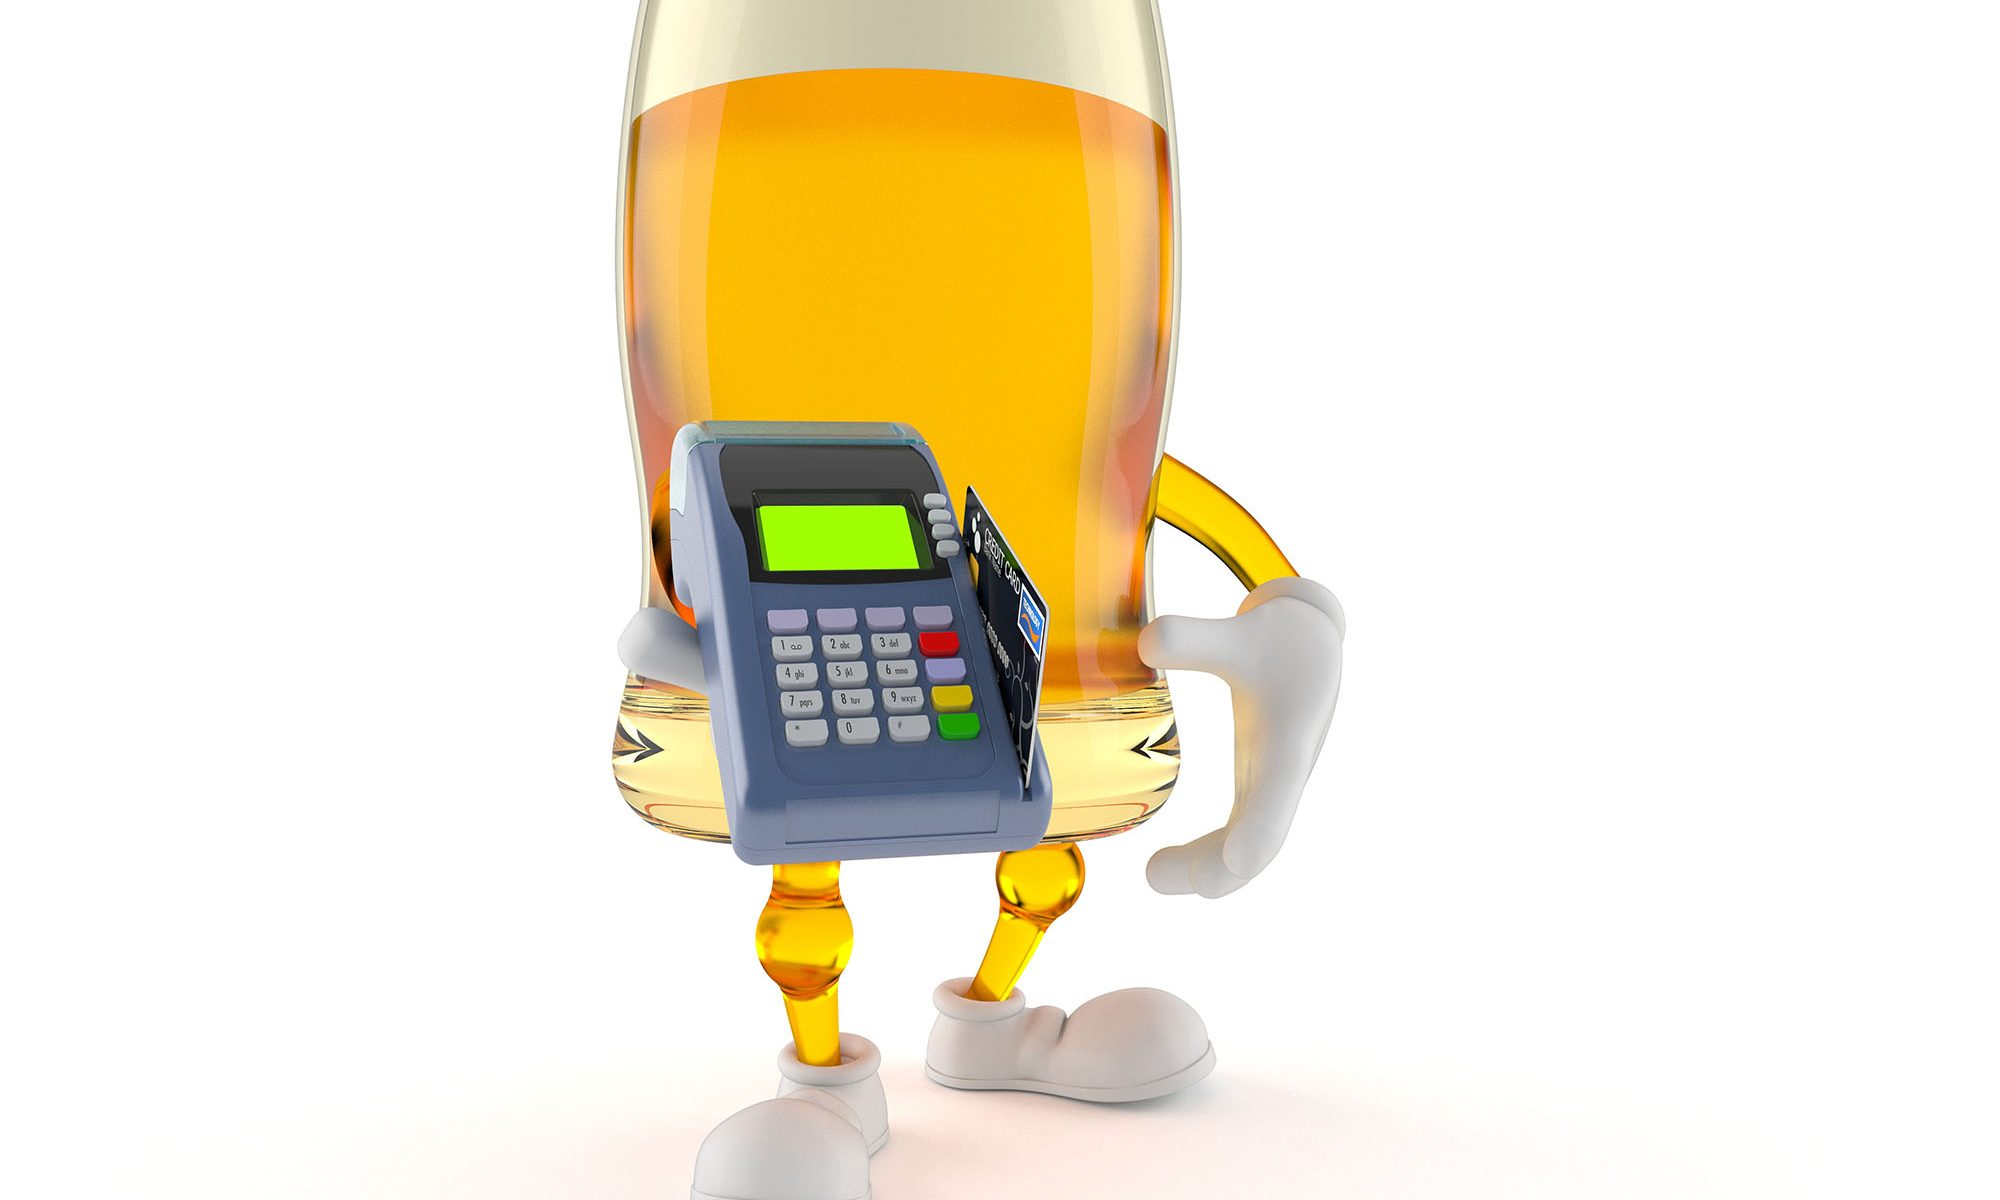 Beer character holding credit card reader isolated on white background